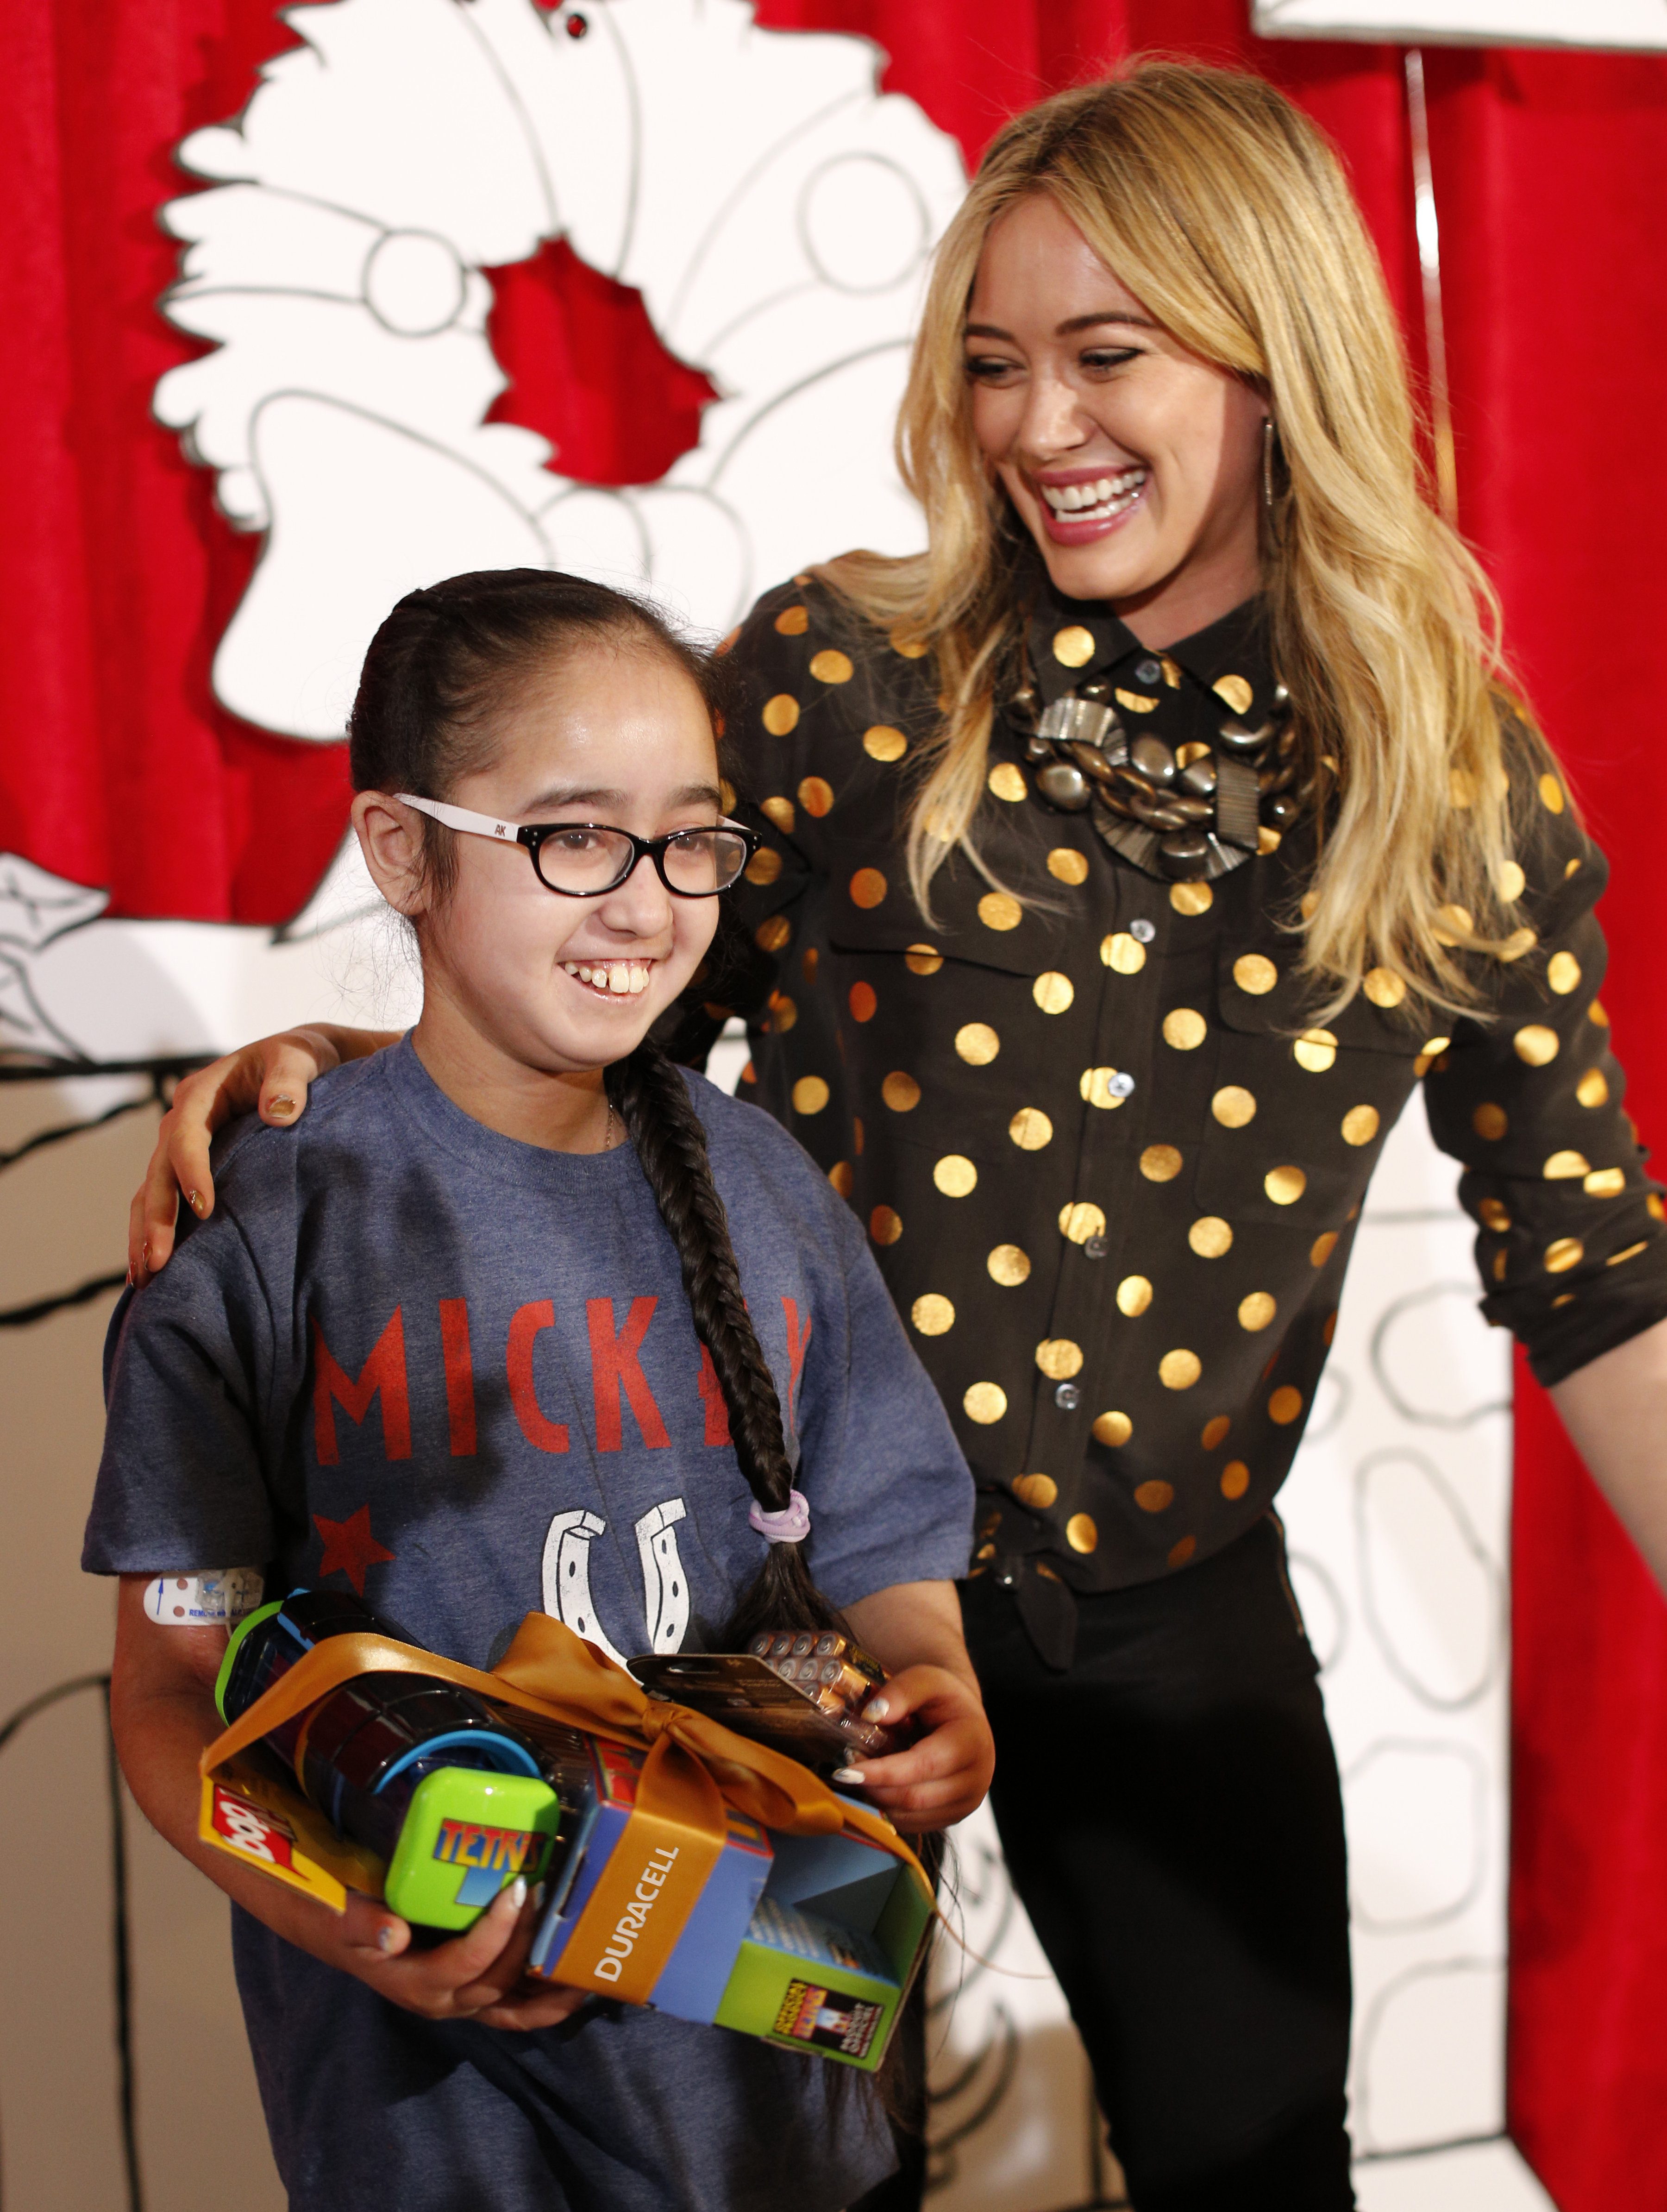 """Hilary Duff and SickKids patient ambassador, Avreen Sahota, launch the Duracell """"Powering Holiday Smiles"""" program, which will donate $1 to Children's Miracle Network for every pack of Duracell Quantum AA-16 batteries purchased by Dec. 27, 2013. (Photo: Business Wire)"""